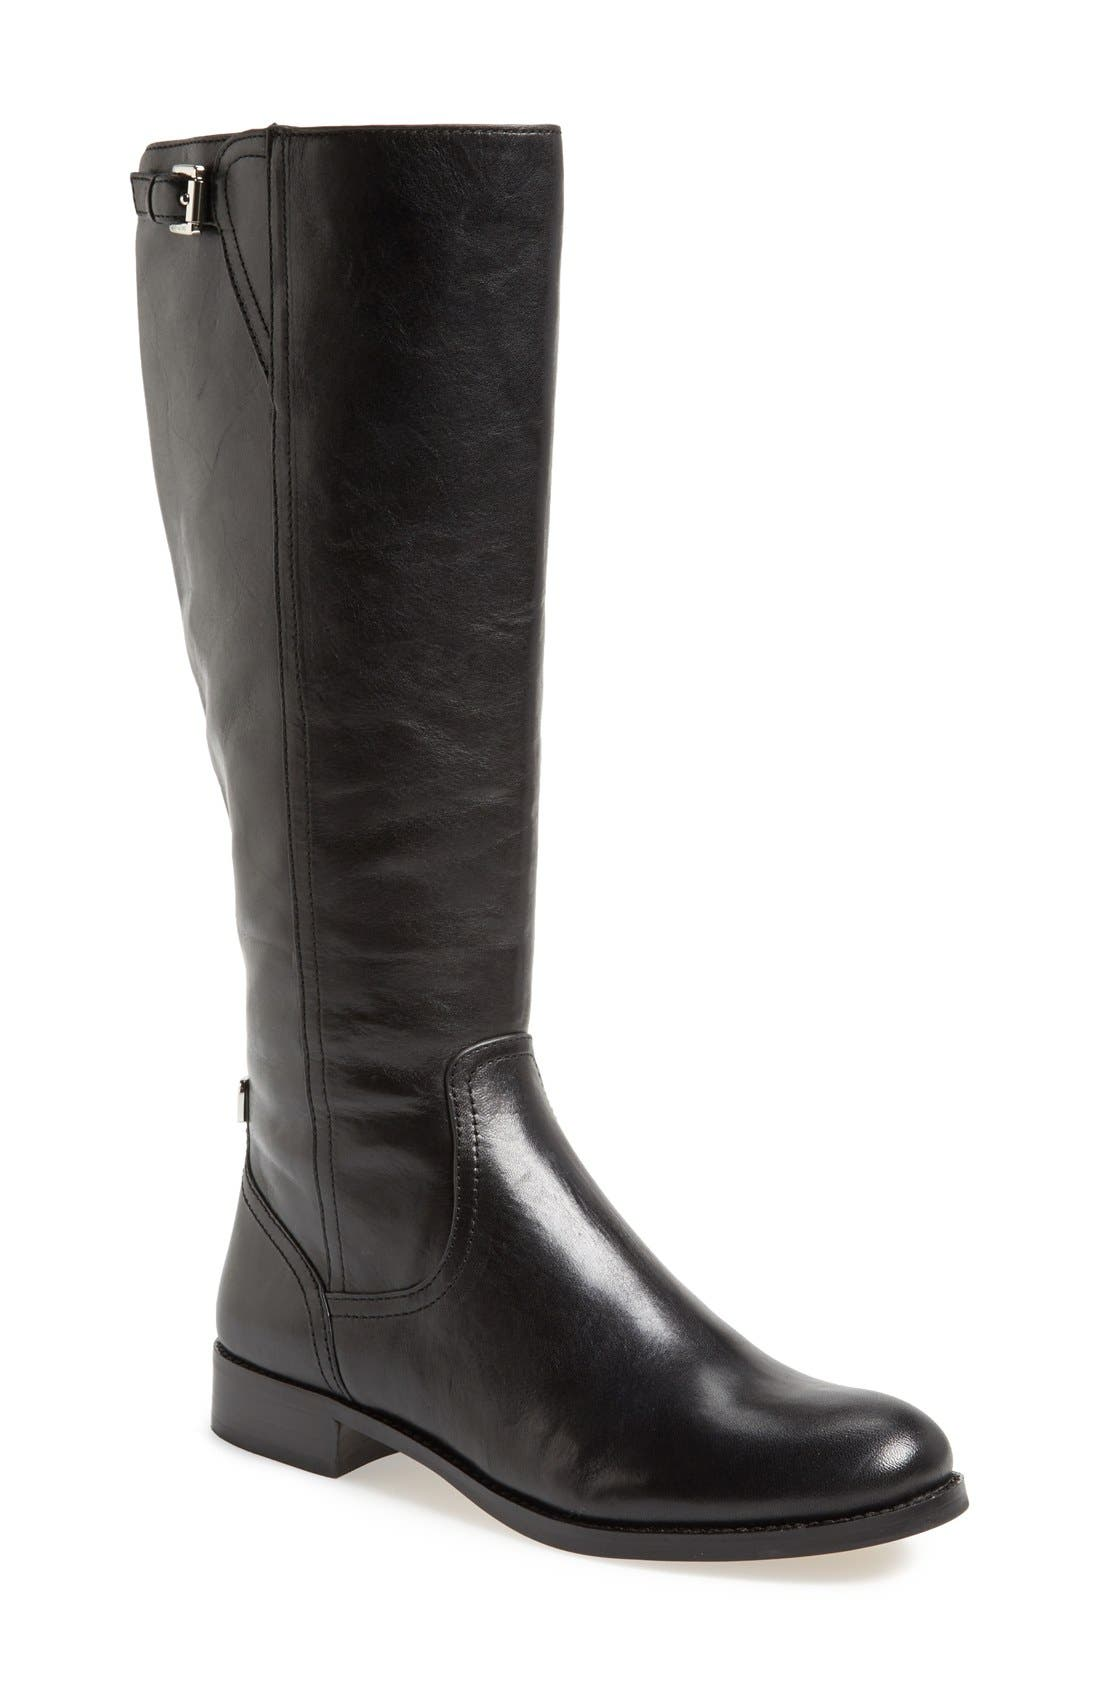 Alternate Image 1 Selected - COACH 'Mirriam' Leather Riding Boot (Women)